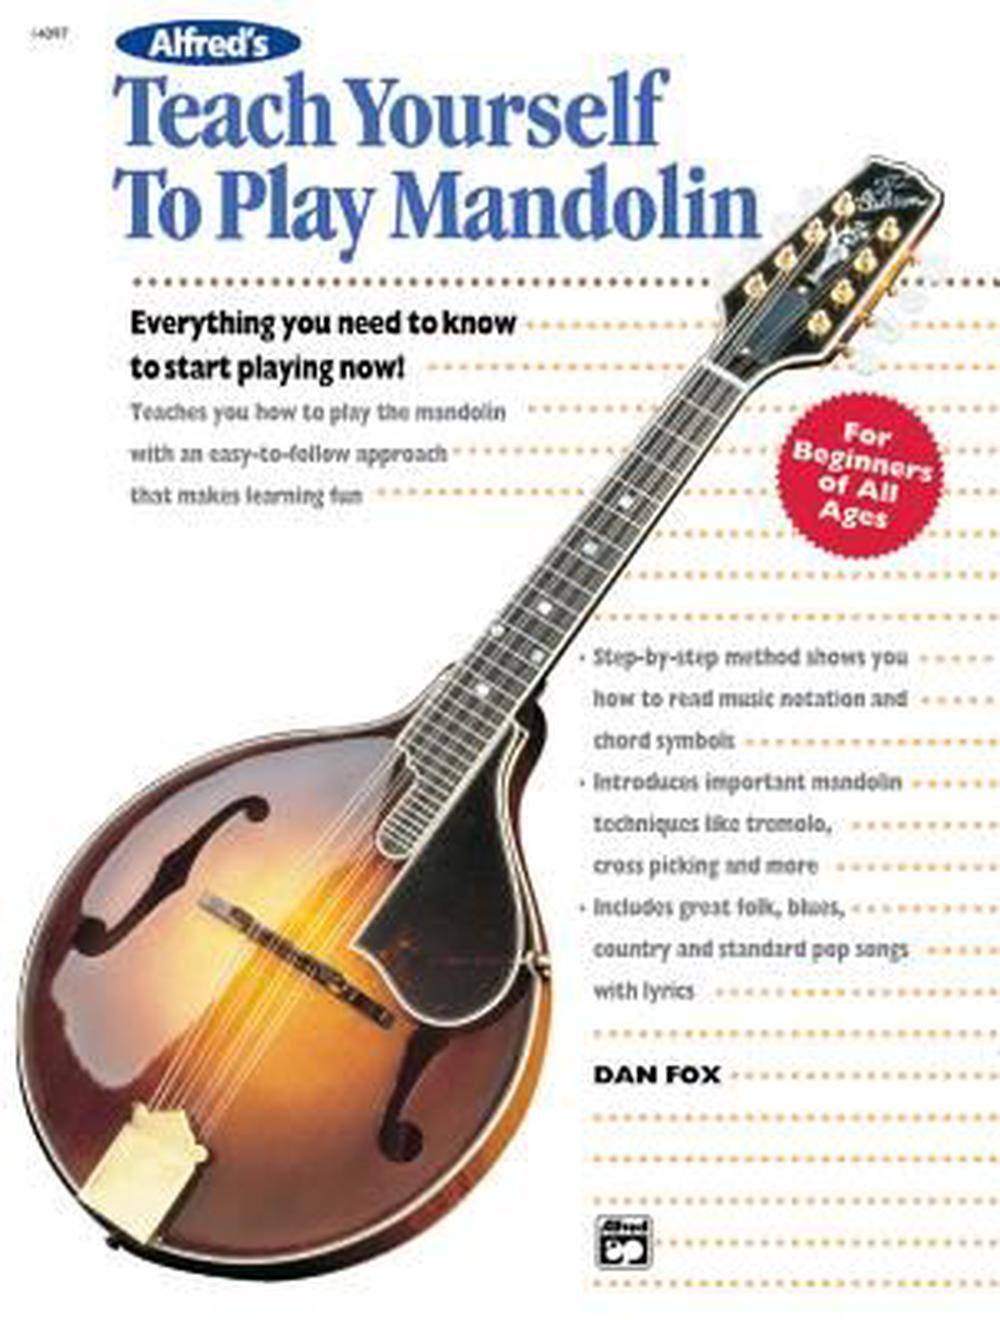 Alfred's Teach Yourself to Play Mandolin: Everything You Need to Know to Start Playing Now! by Dan Fox, ISBN: 9780739002865